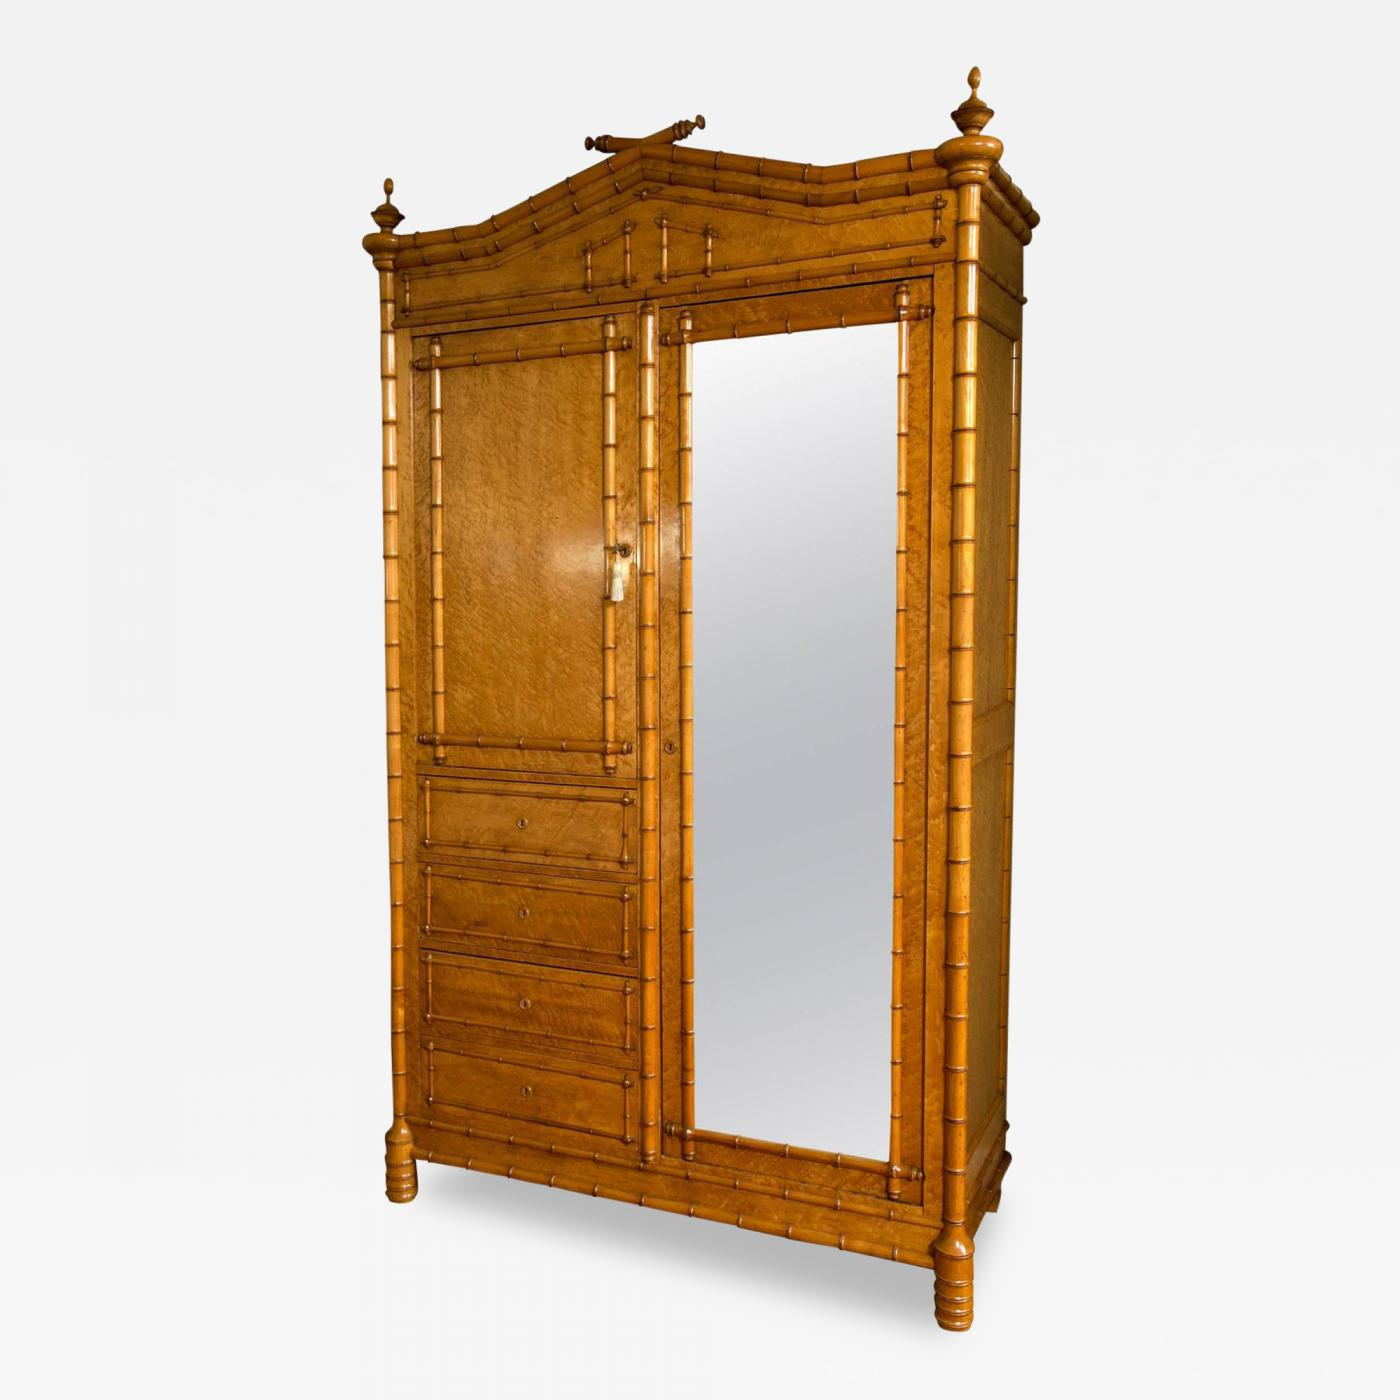 R.J. Horner & Co. - Aesthetic Movement Maple Faux Bamboo Armoire